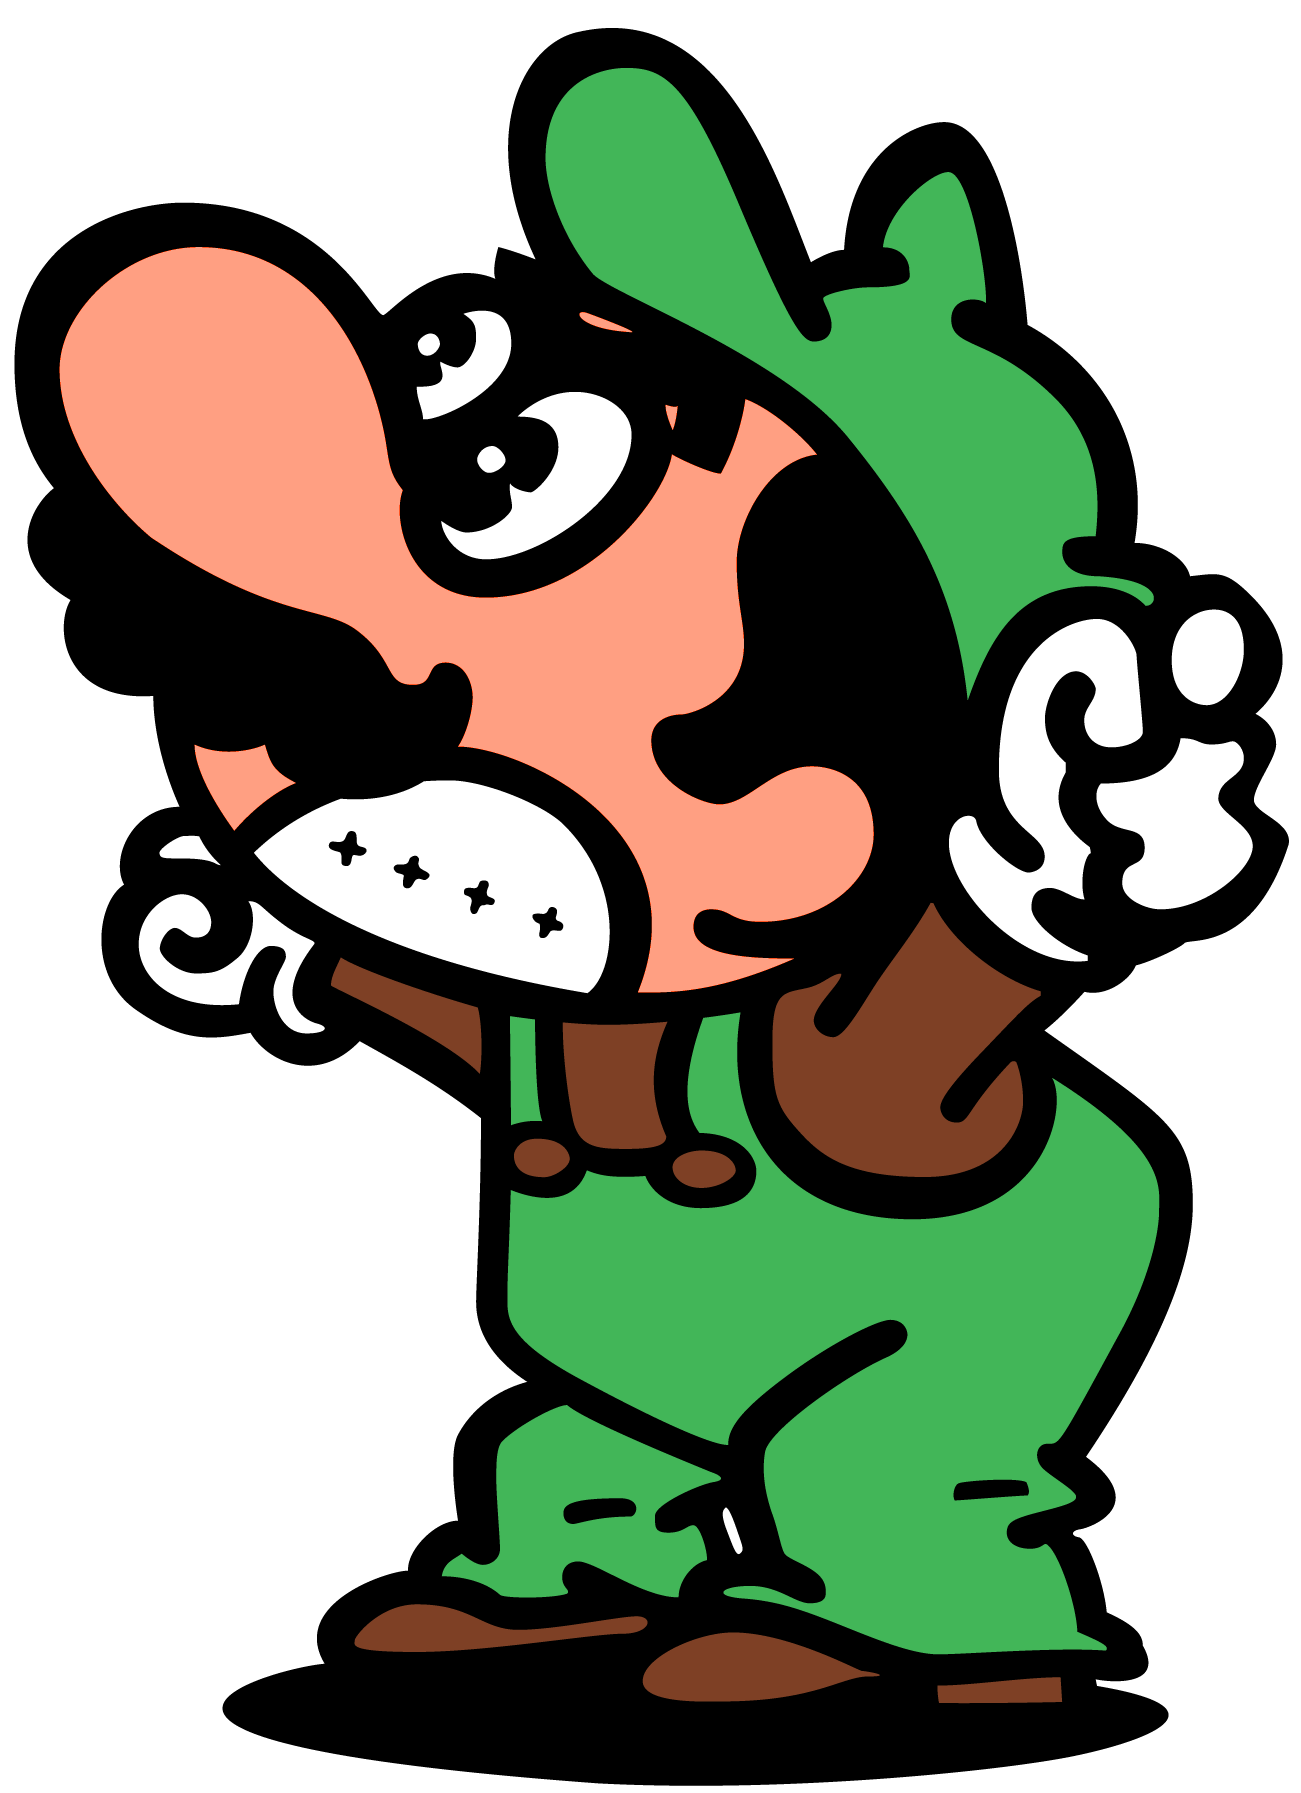 graphic transparent library Luigi mario bros games. Arcade clipart video